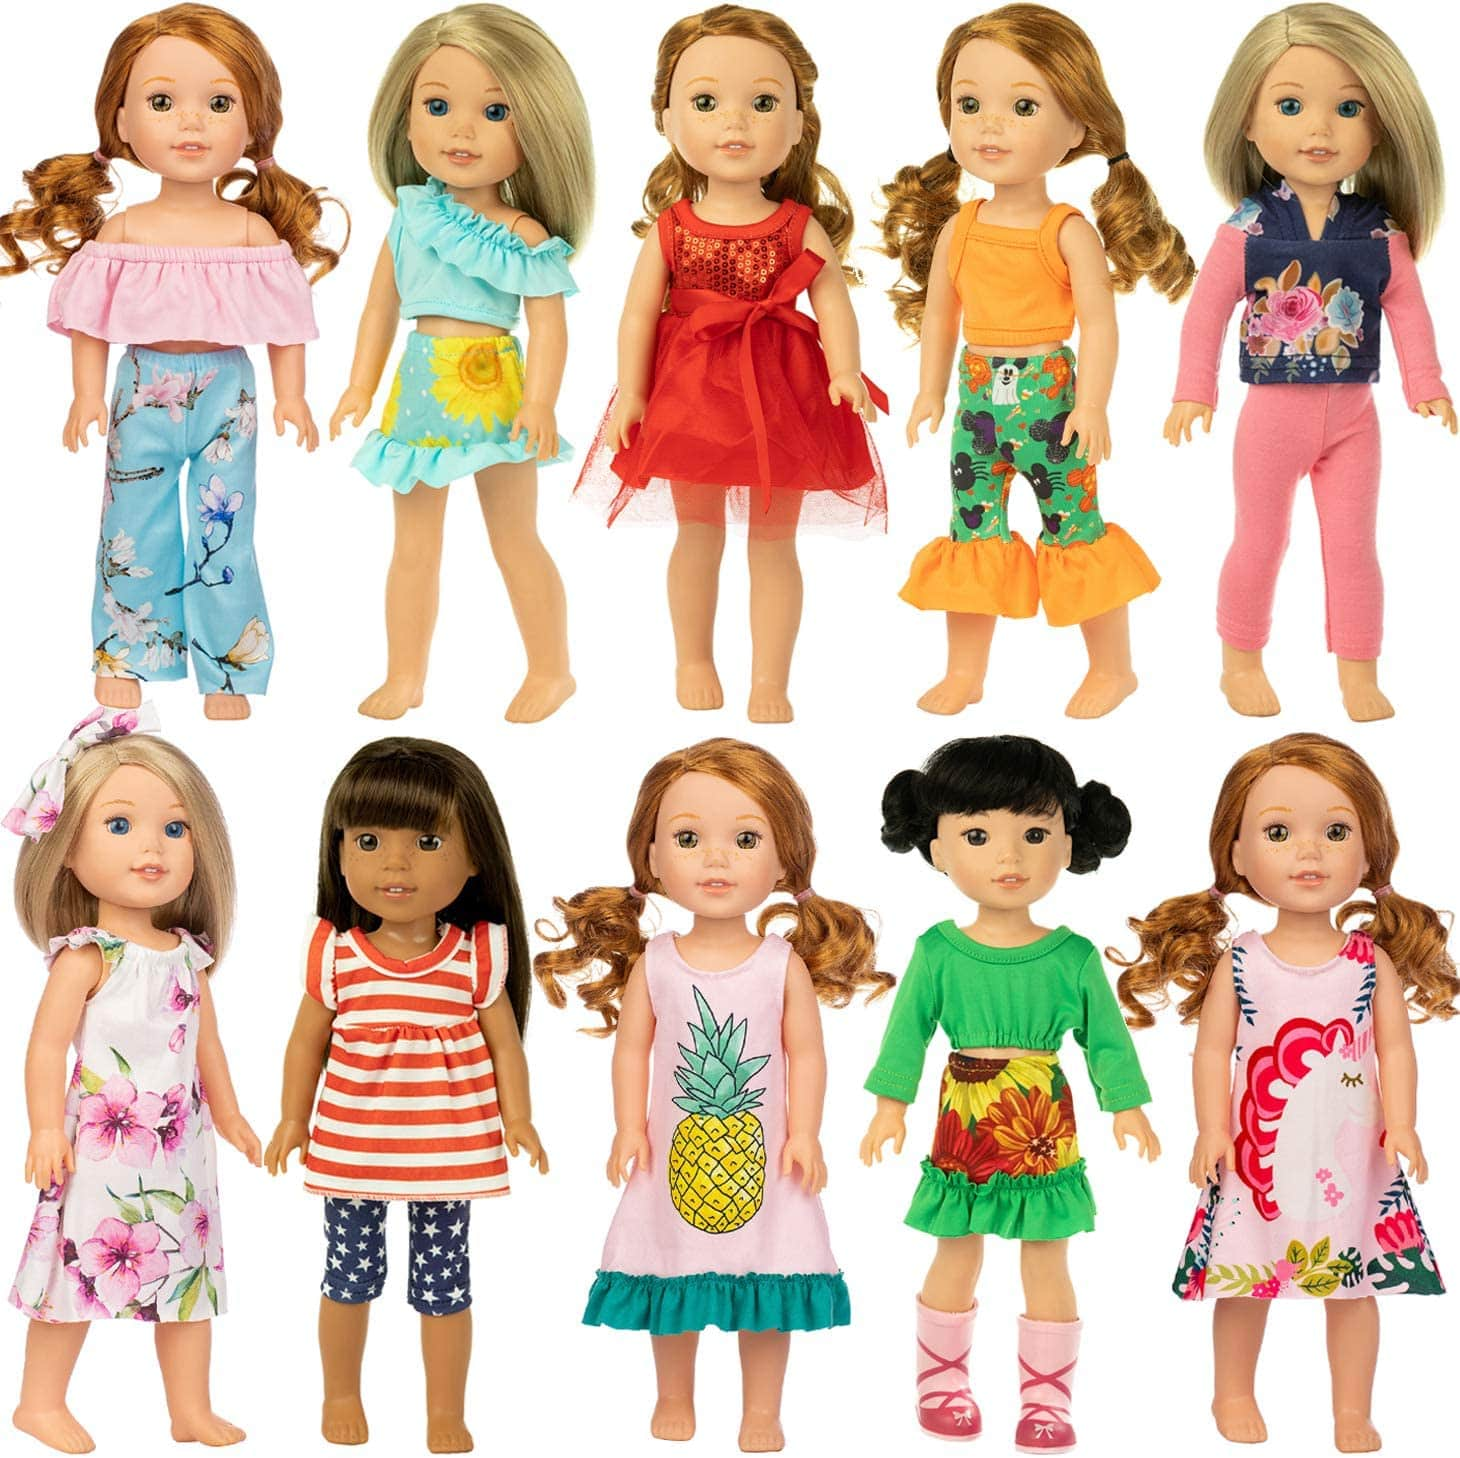 ZITA ELEMENT 10 Complete Sets Fashion Handmade American 14.5 Inch Girl Wellie Doll Casual Wear Clothes and Party Dress $20.99